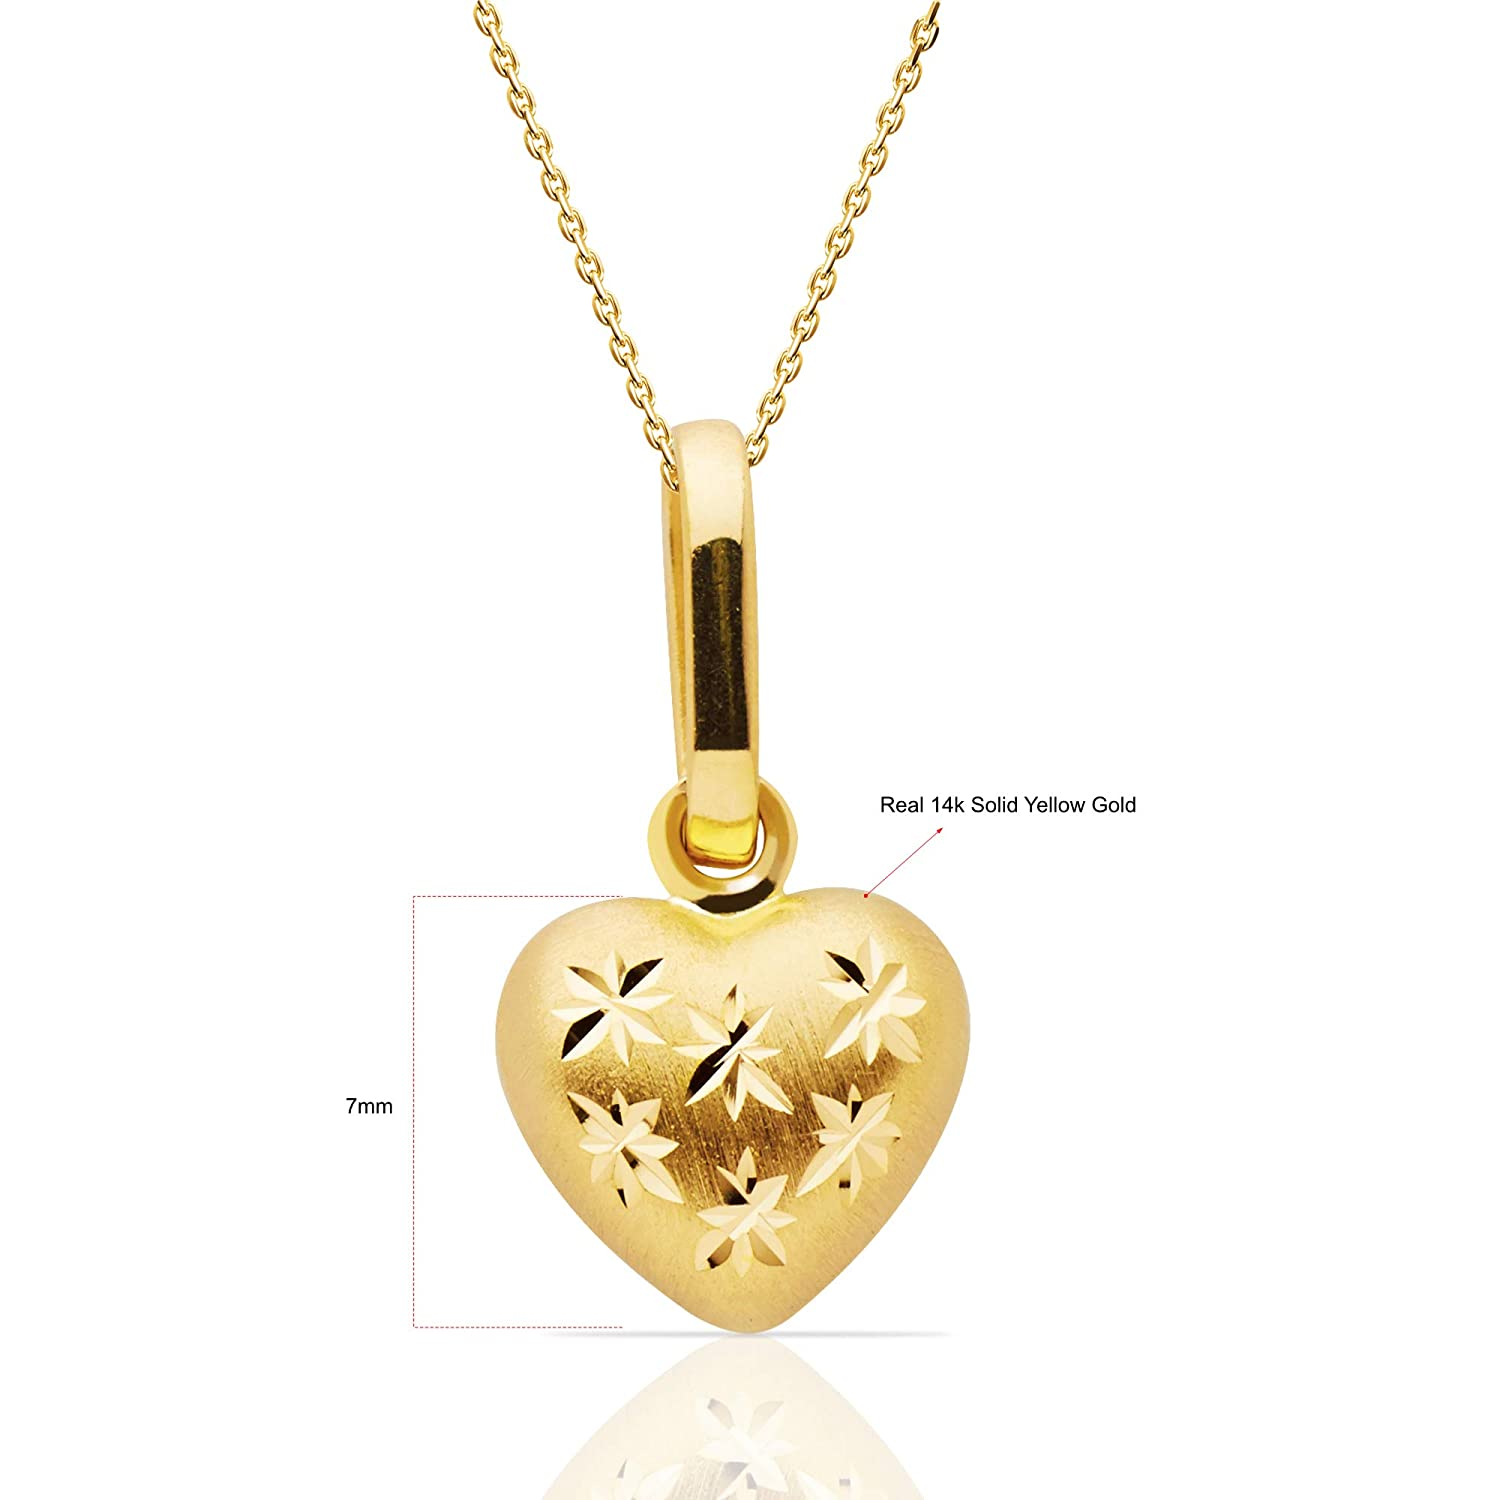 438078c95151f 14k Yellow Gold Heart Pendant Necklace, 18